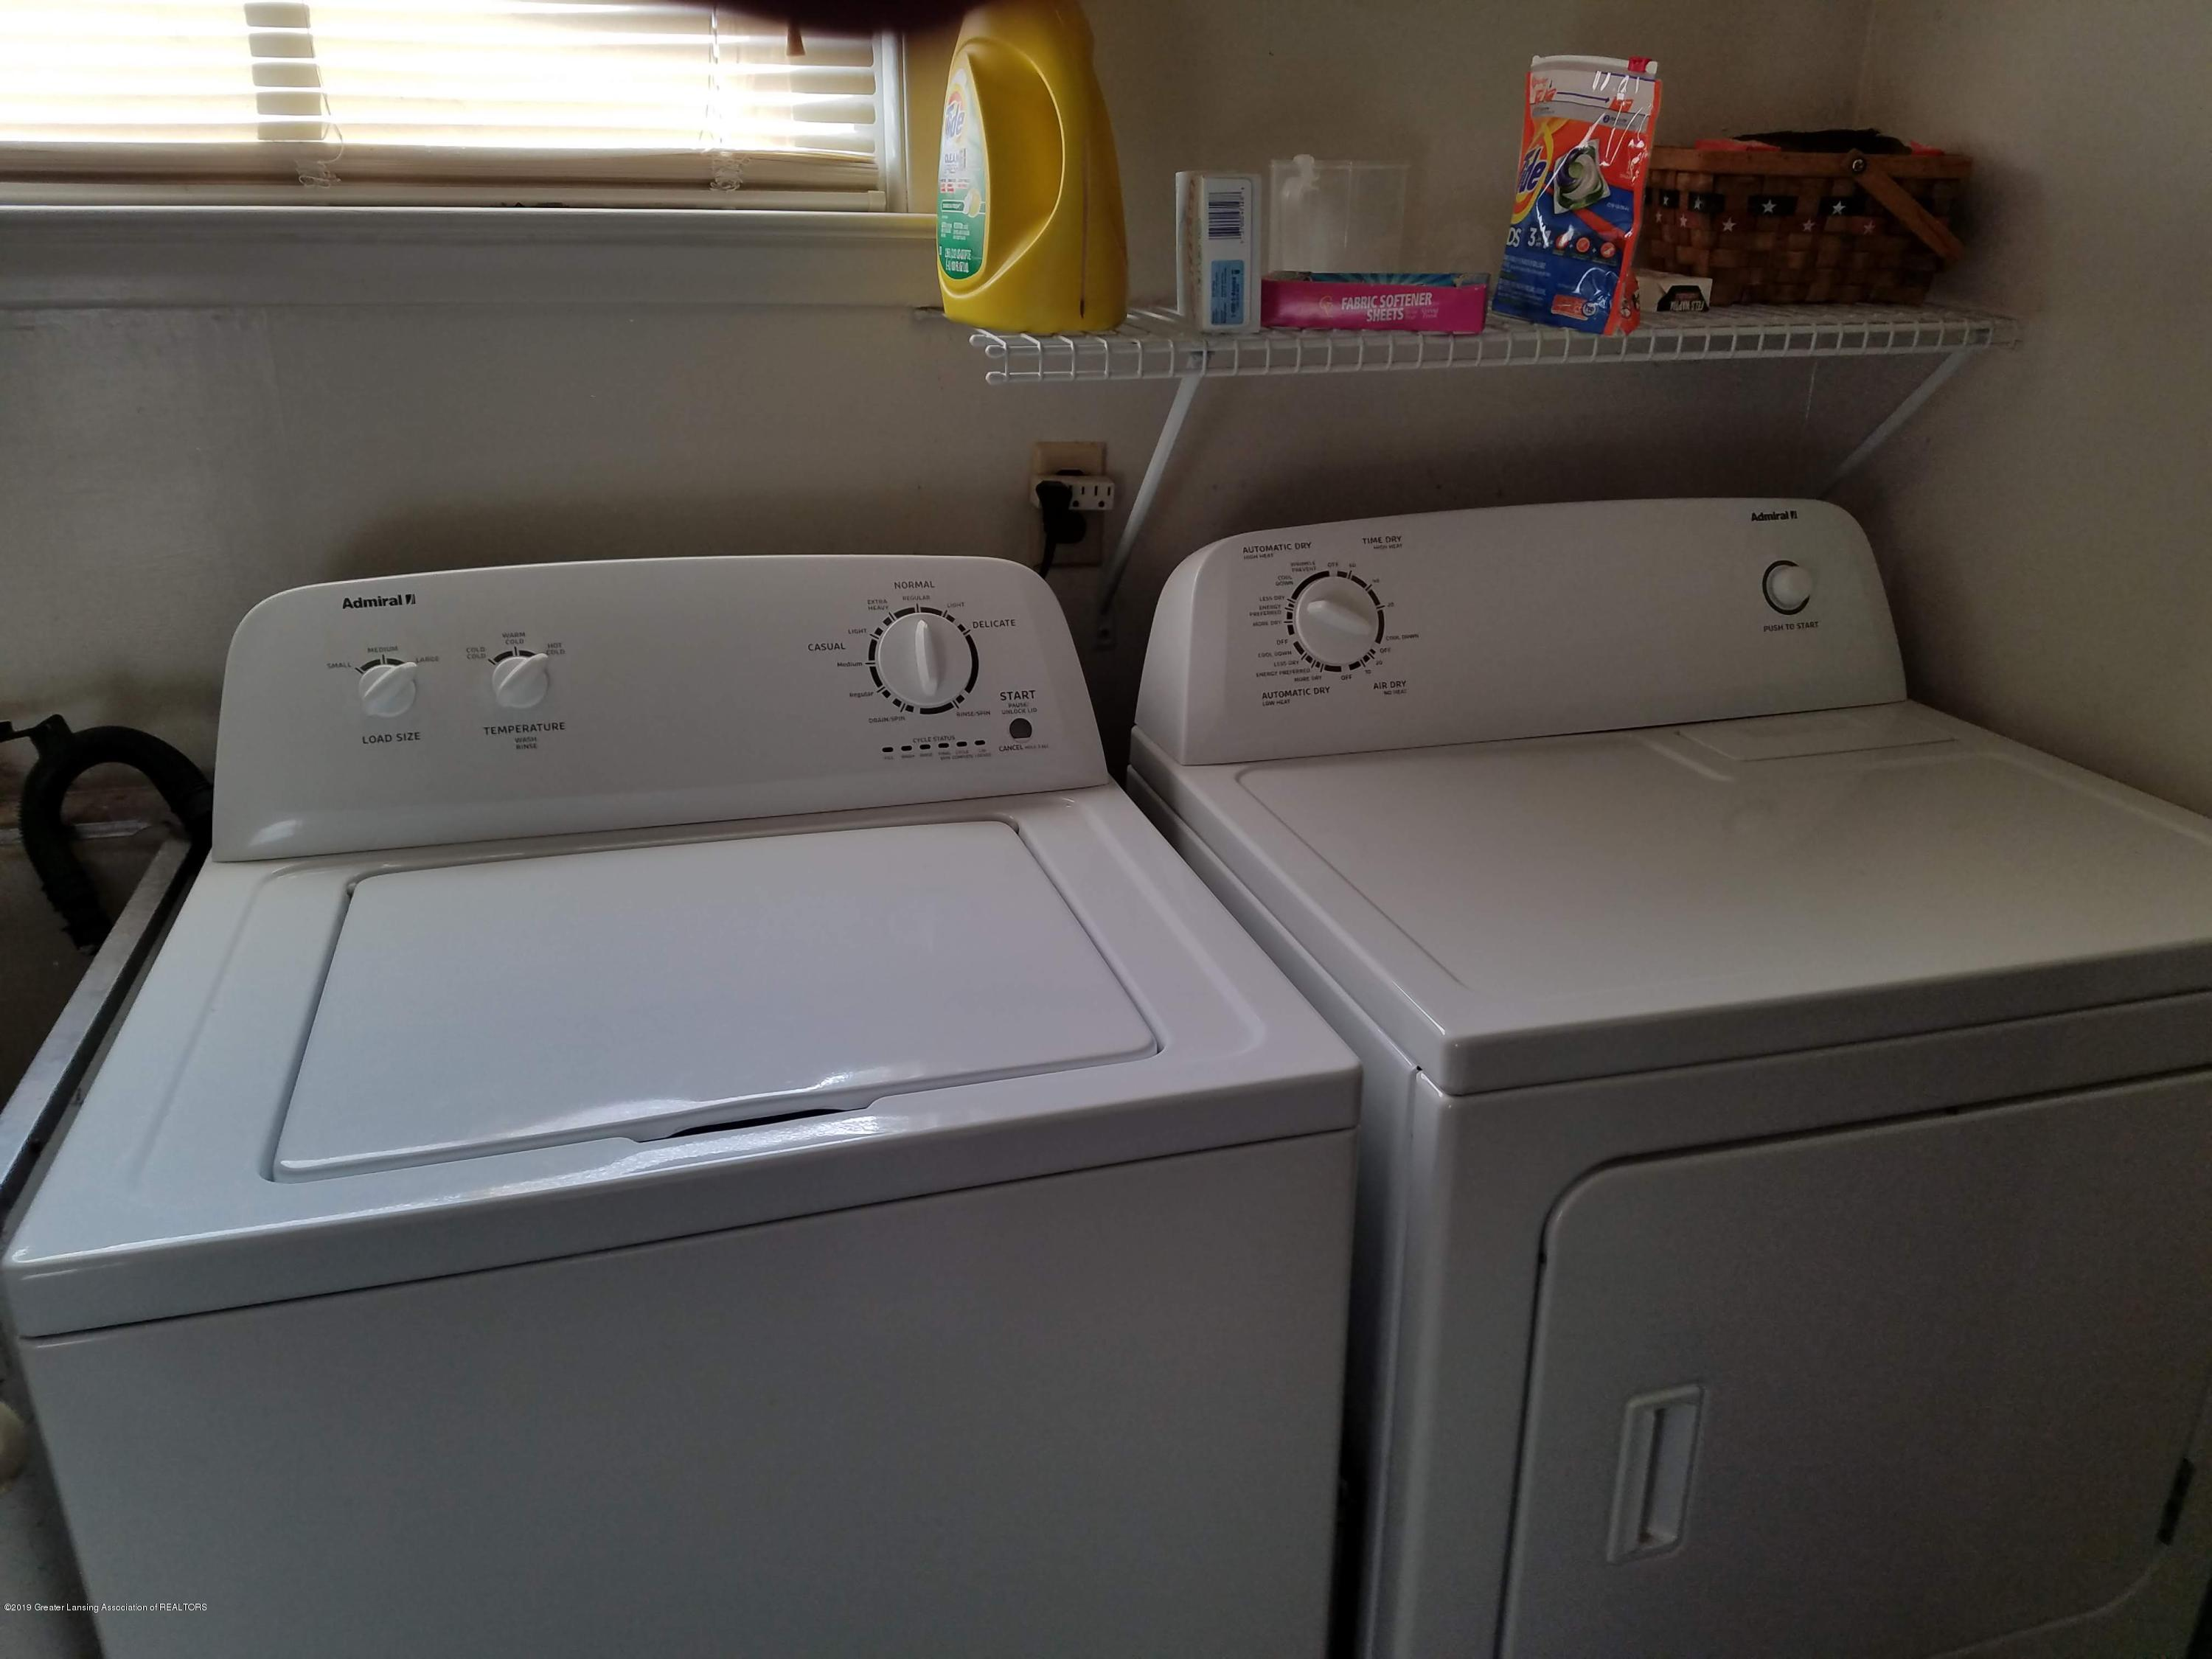 8700 W Hyde Rd - Laundry - 17